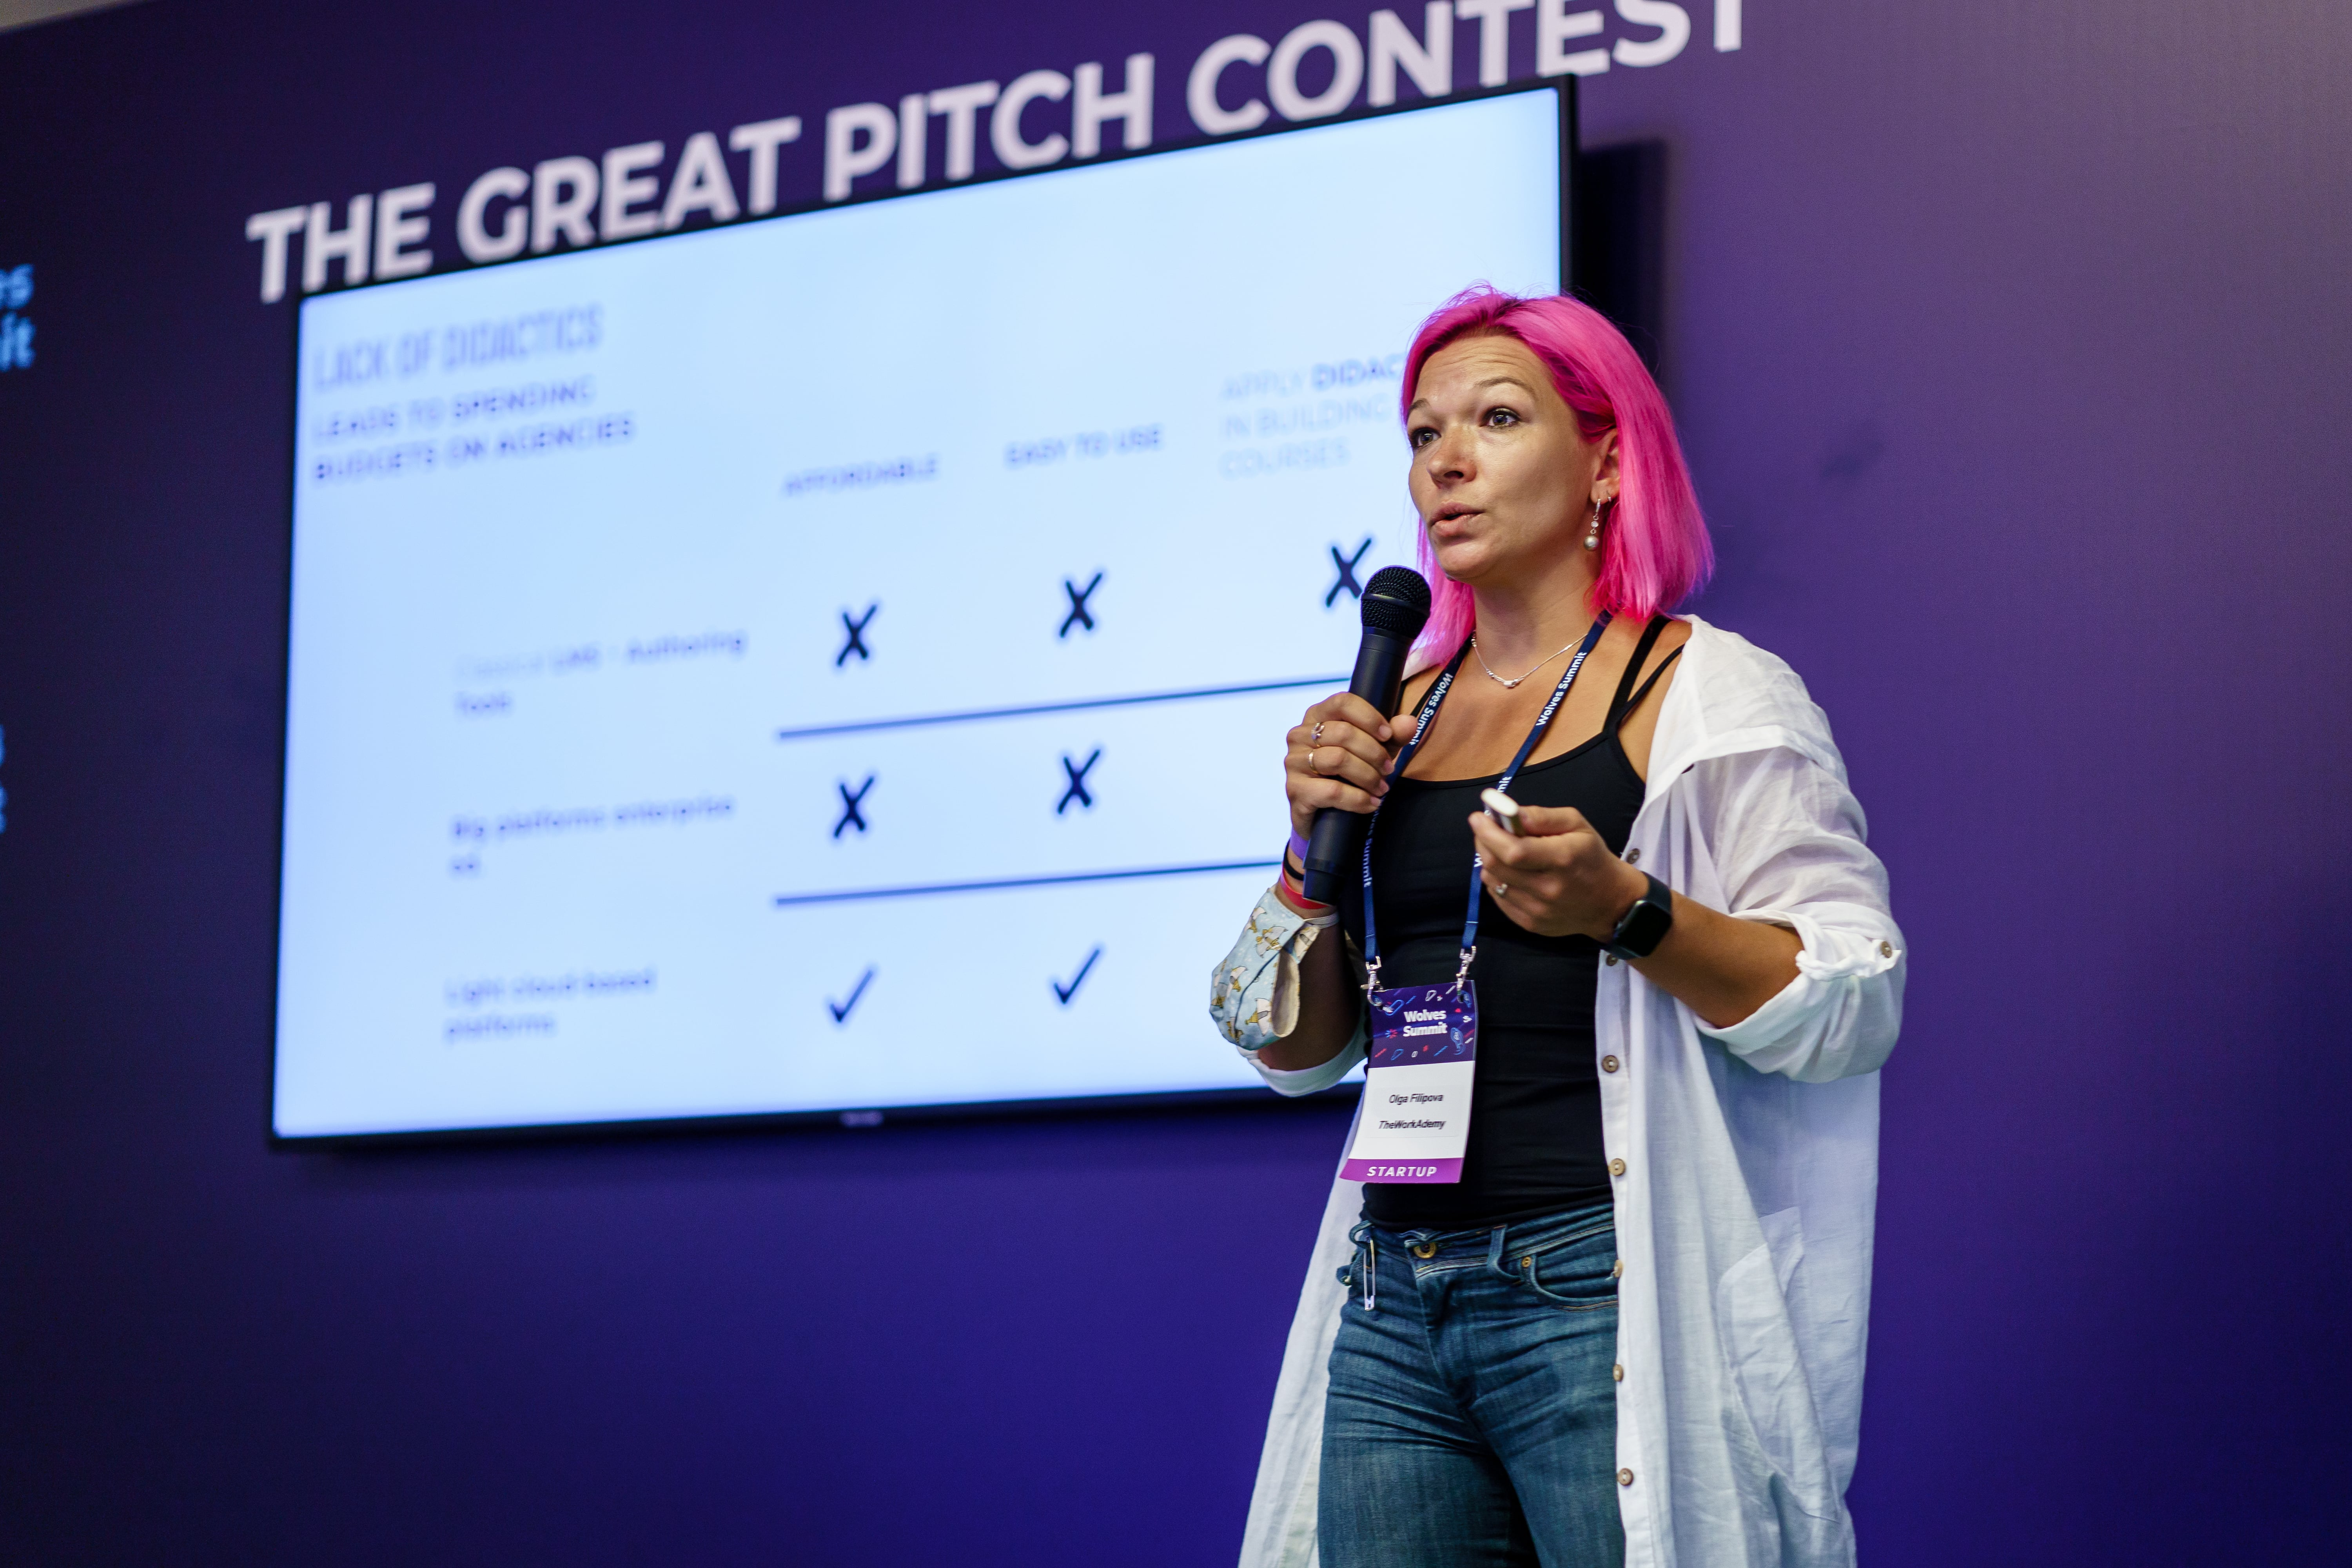 A woman taking part in the pitching contest on the stage.